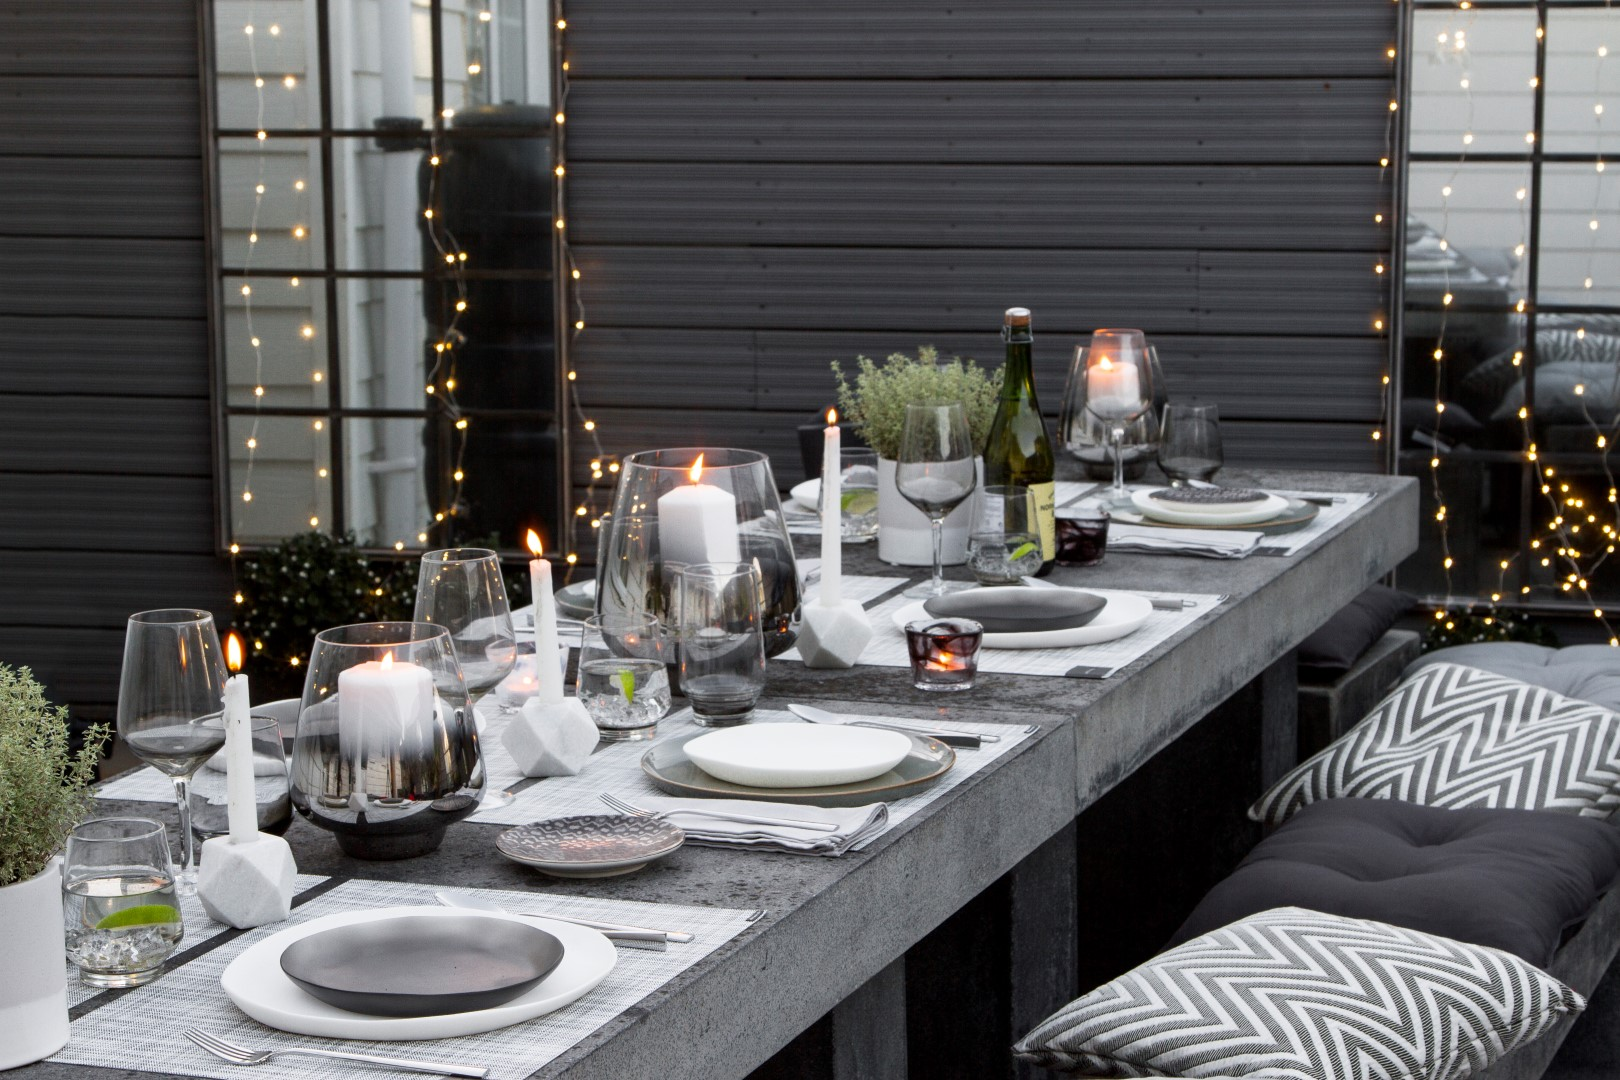 5 Garden Patio Ideas To Prepare For Outdoor Dining In 2017